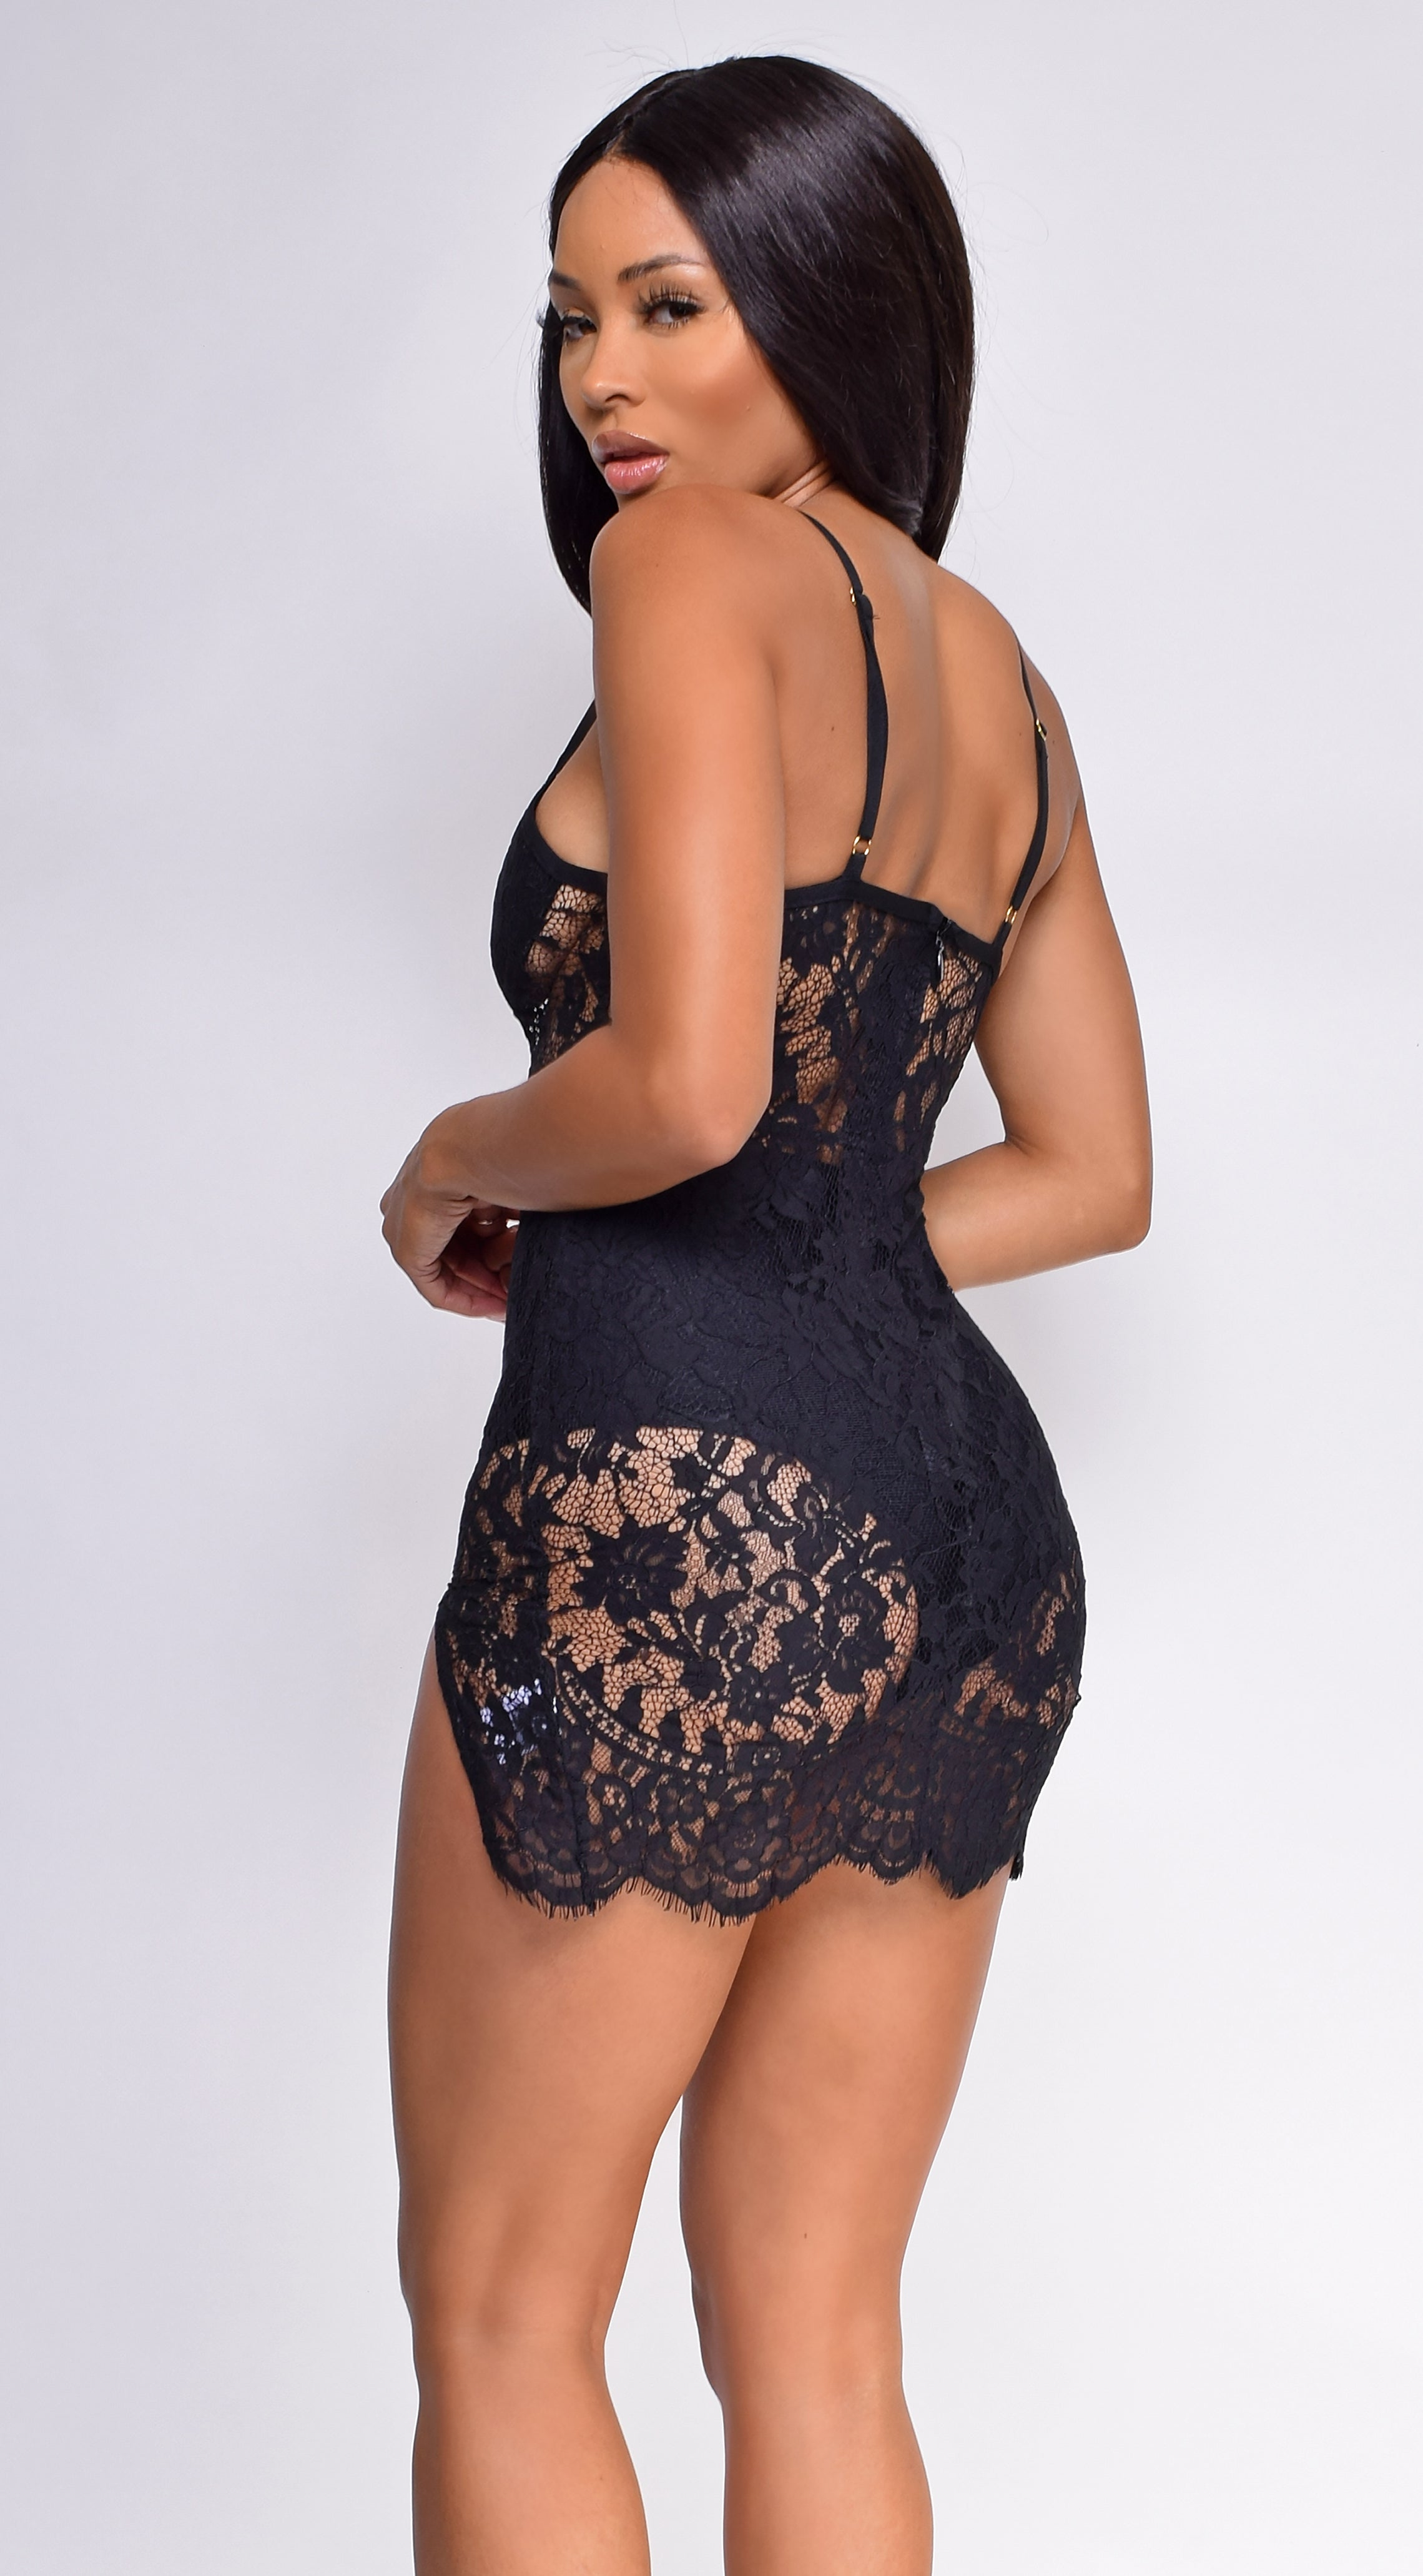 Adonia Black Lace Mesh Bandage Dress